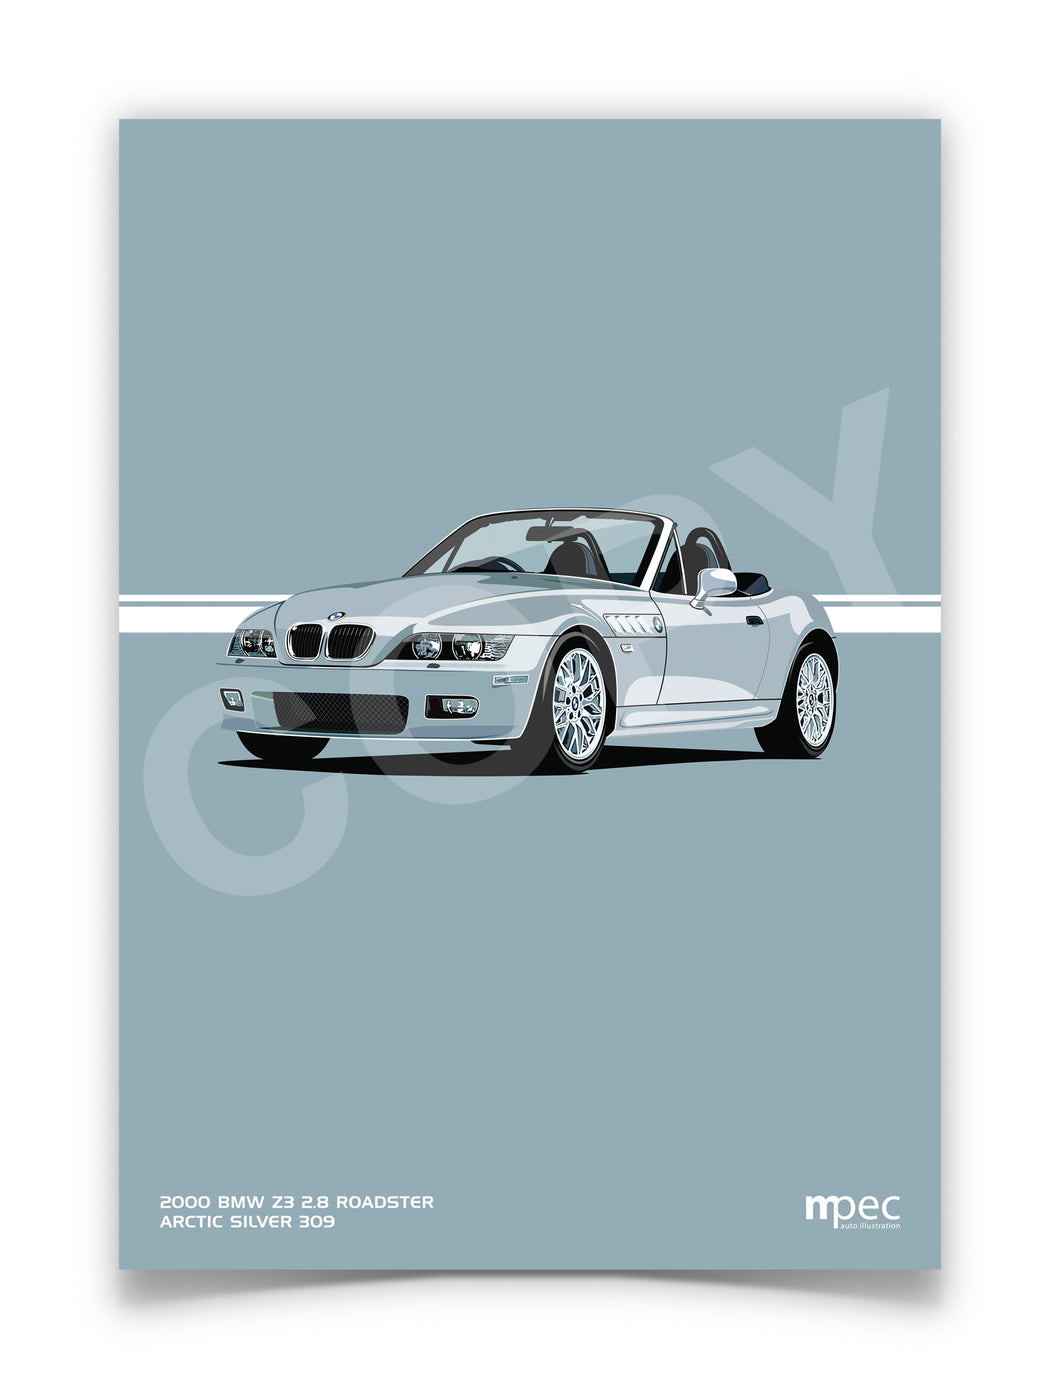 Illustration 2000 BMW Z3 2.8 Roadster Arctic Silver 309